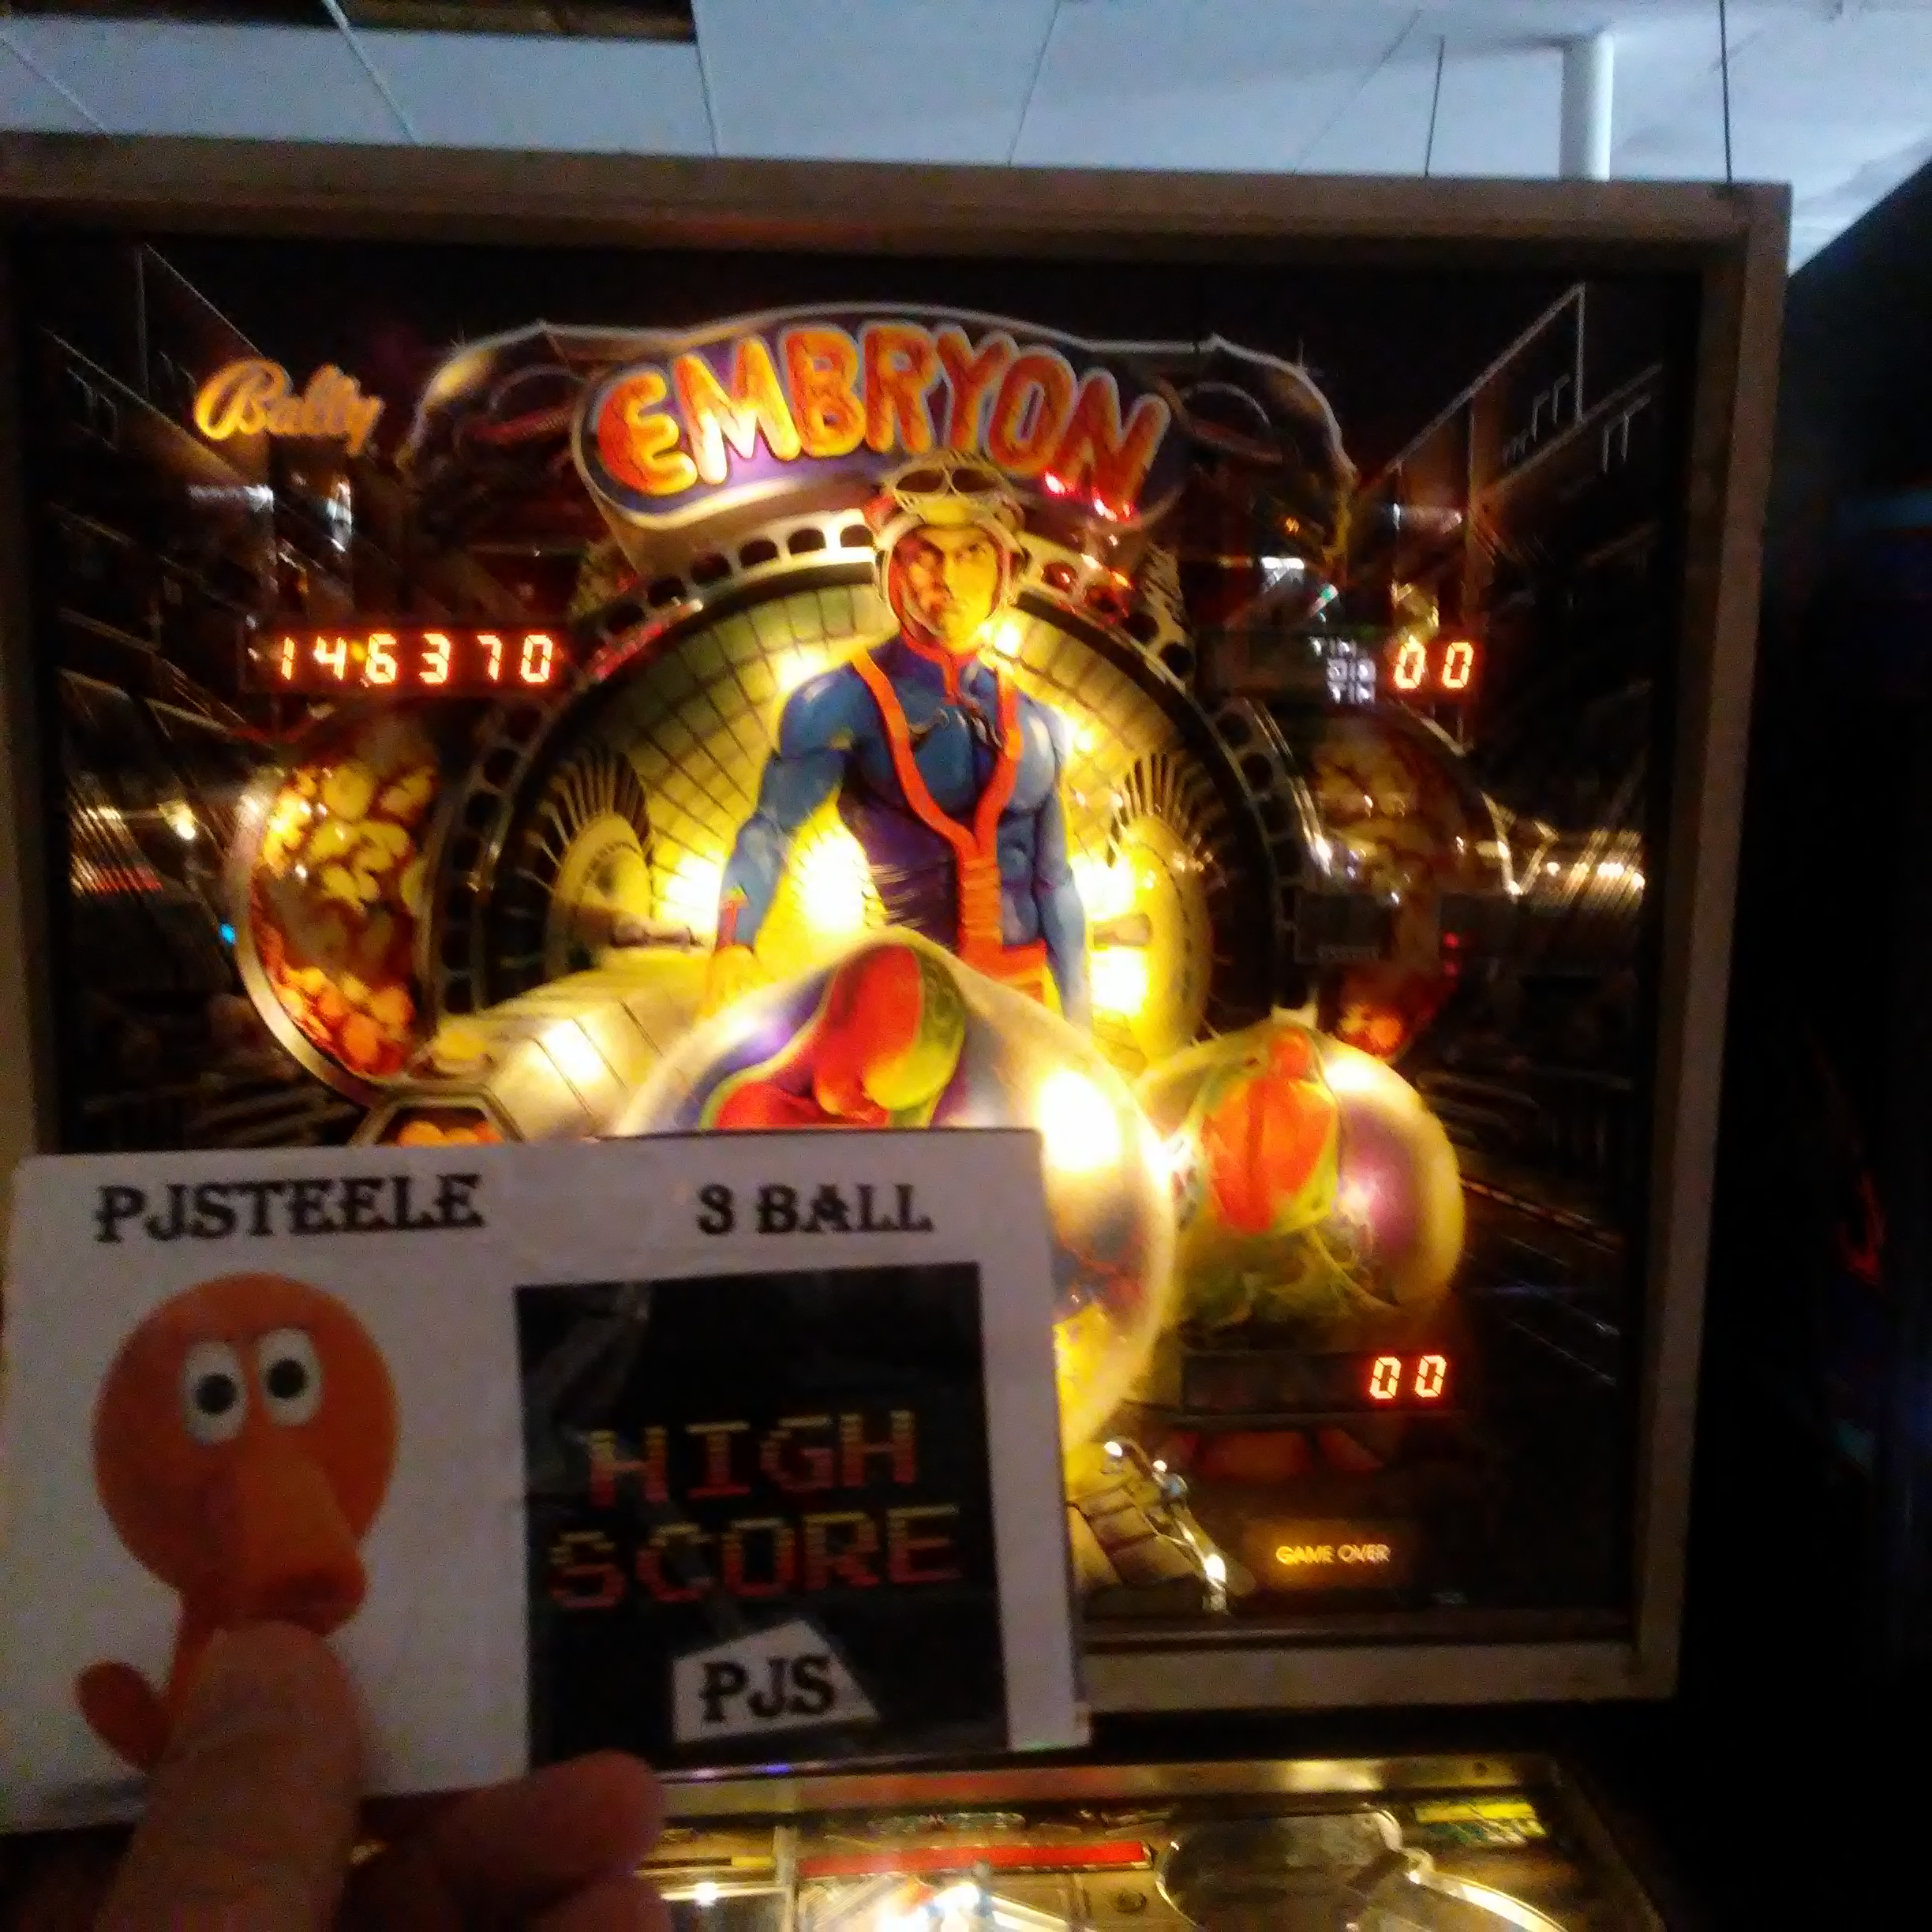 Pjsteele: Embryon (Pinball: 3 Balls) 146,370 points on 2018-03-03 21:10:42